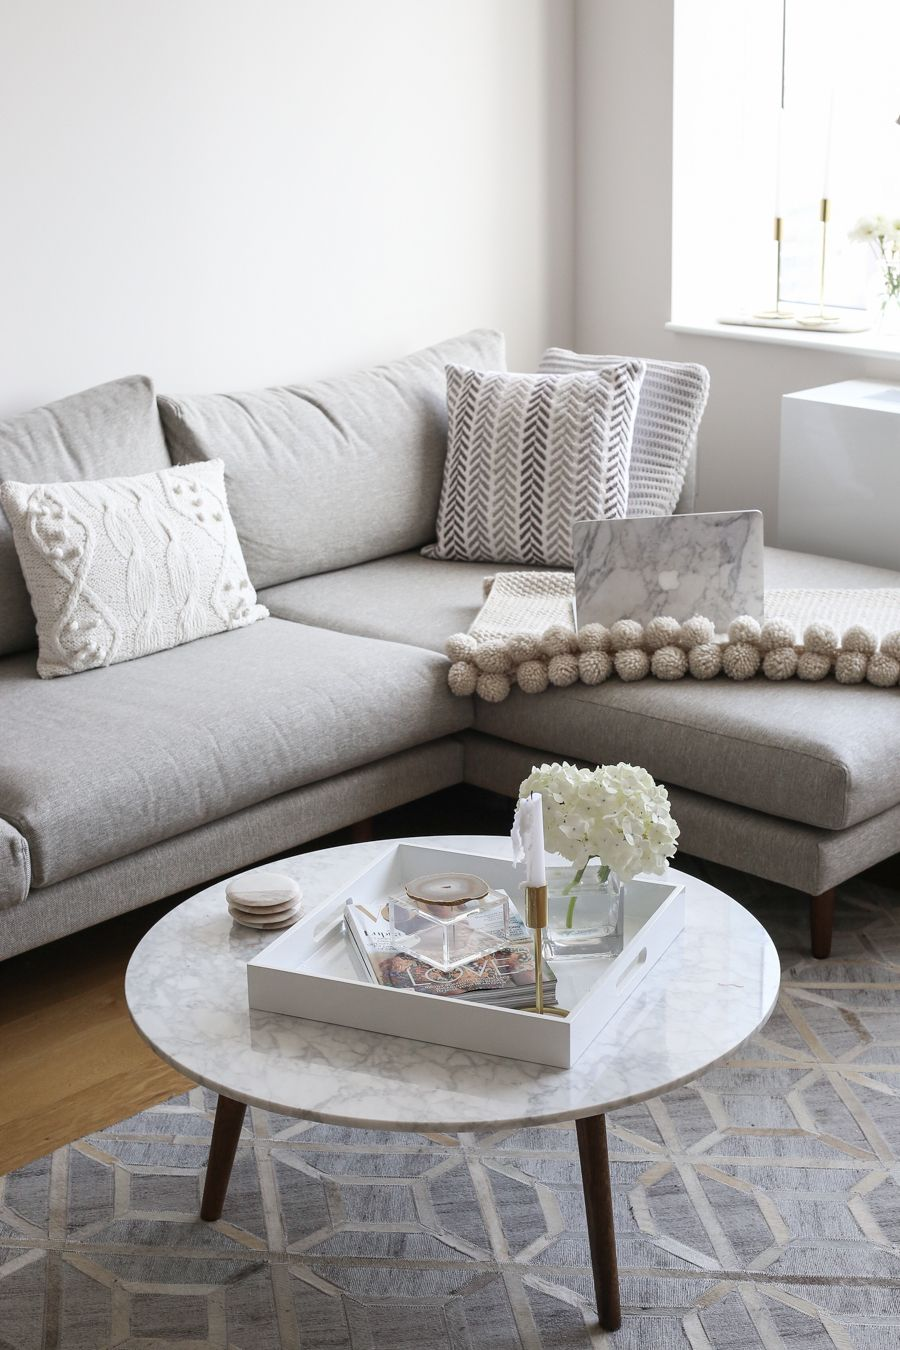 Nyc Living Room Apartment Grey Sectional Sofa With A Marble Coffee Table Couches Living Room Apartment Sectional Sofa Gray Sectional Living Room